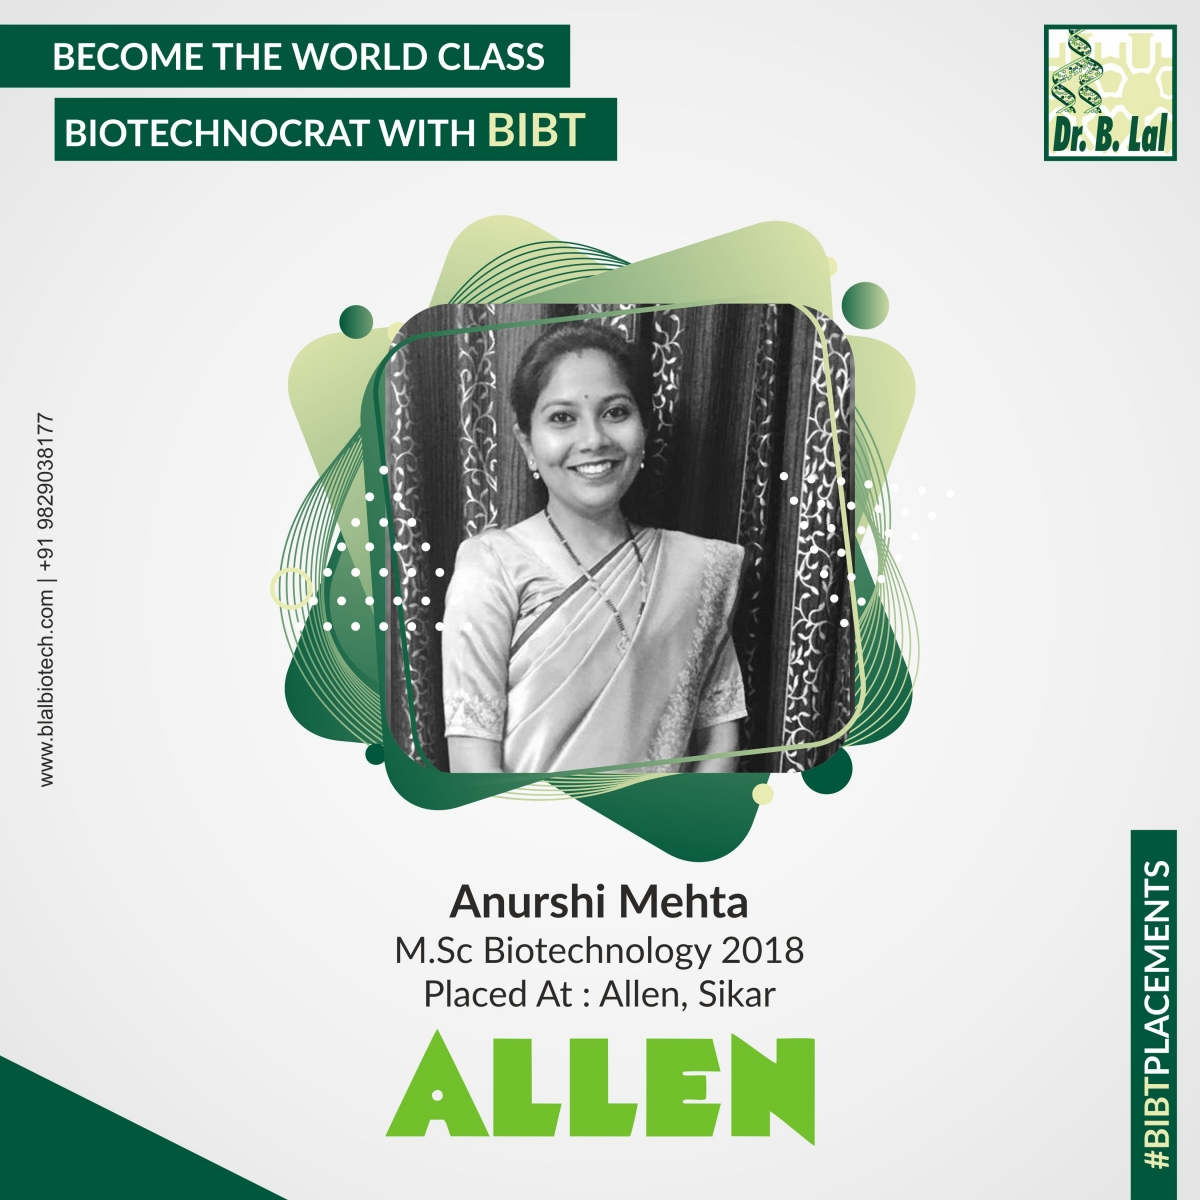 Anurshi Mehta, M.Sc. Biotechnology 2018 | #BIBTPlacements